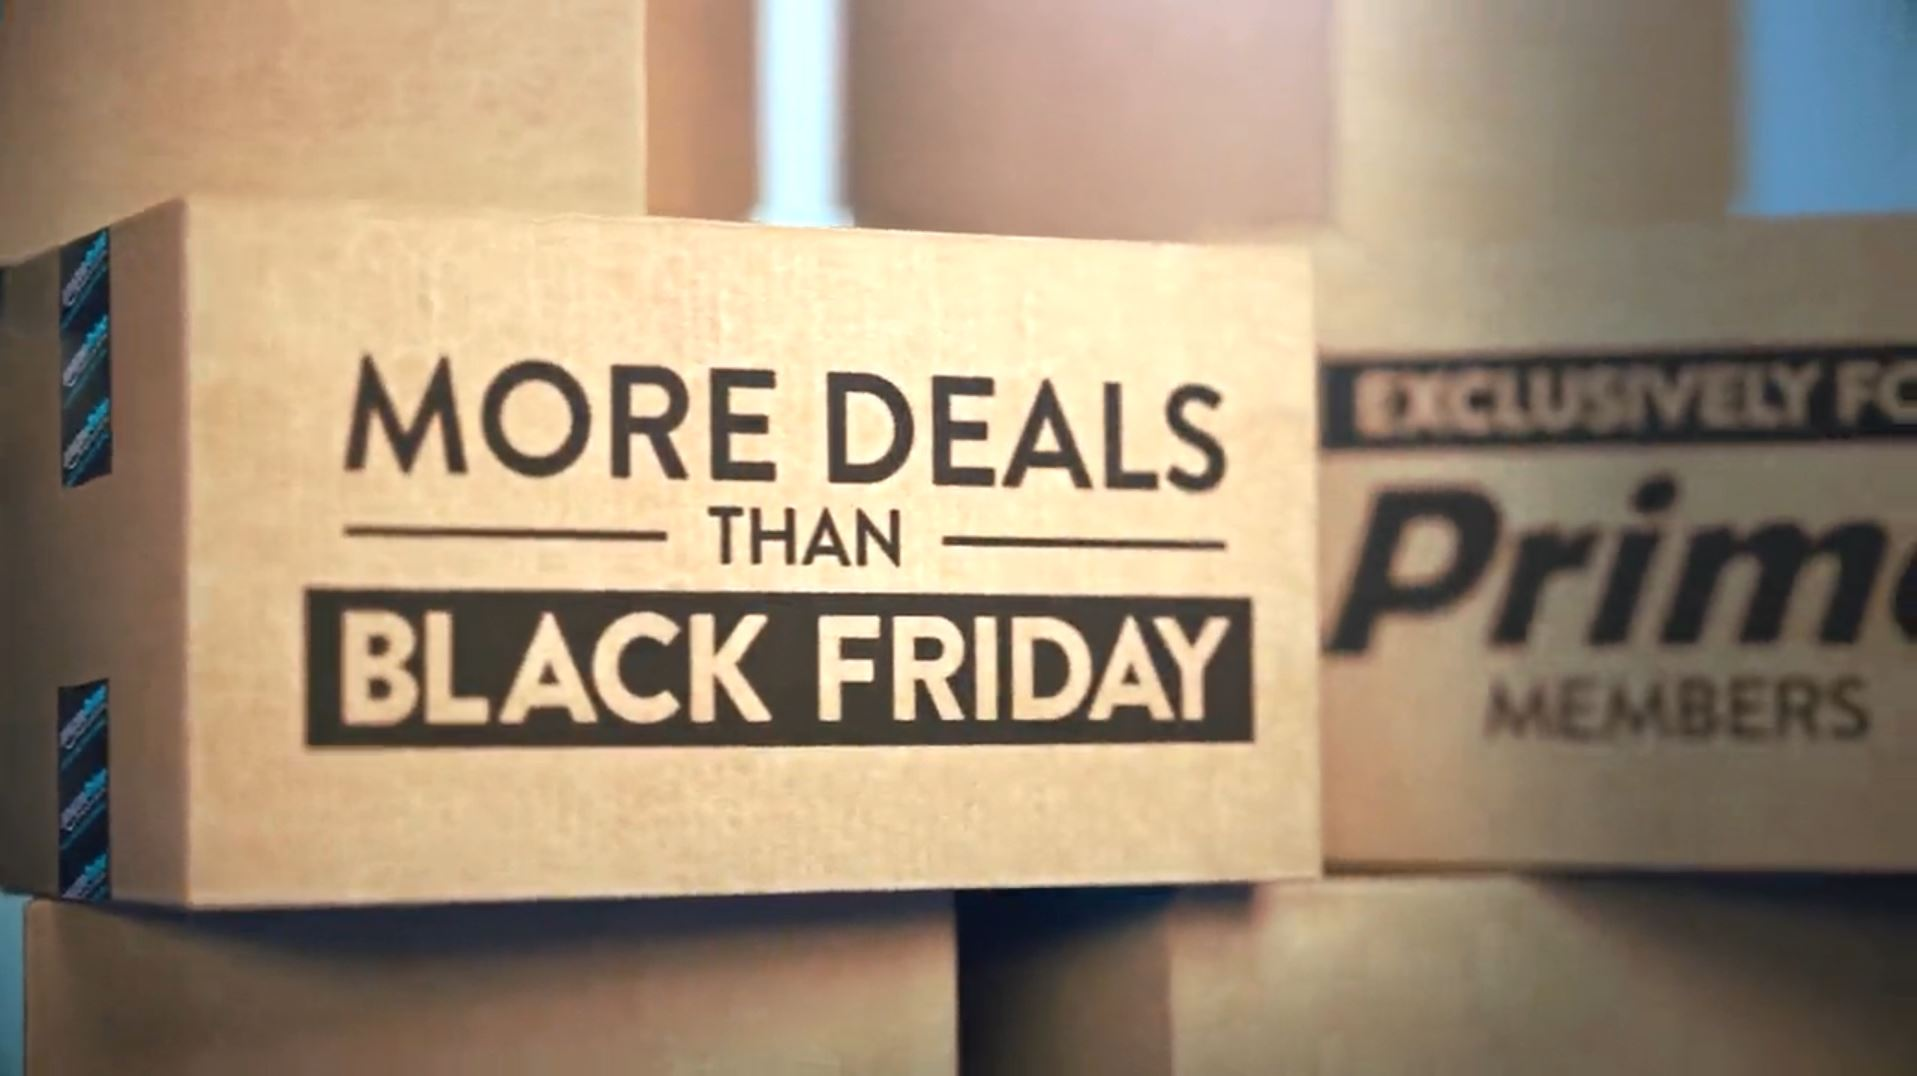 more deals than black friday